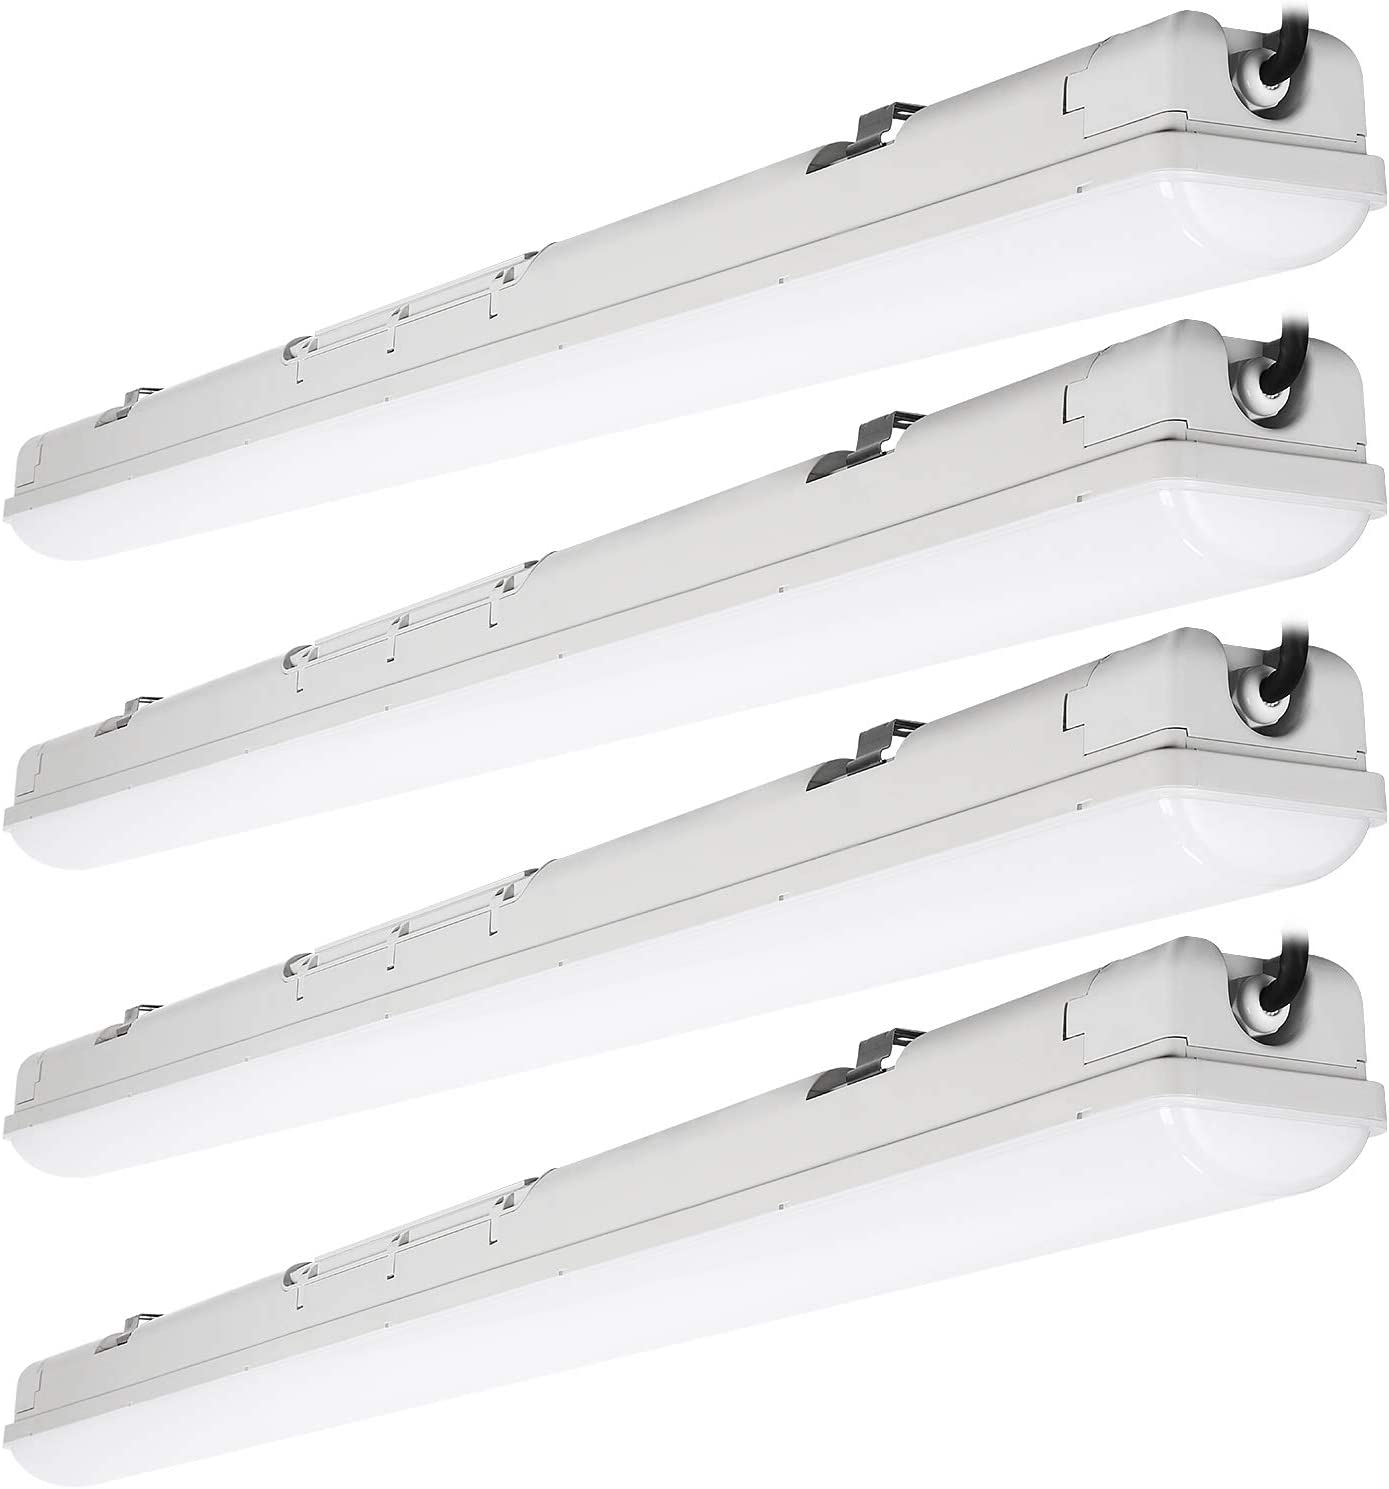 LEONLITE 40W 4FT LED Vapor Proof Light, 100W Eqv. UL Listed, 4400Lm, 5000K Daylight, IP65, CRI80+, 100-277V, Waterproof Shop Light for Parking Garage Wash Warehouse, Pack of 4